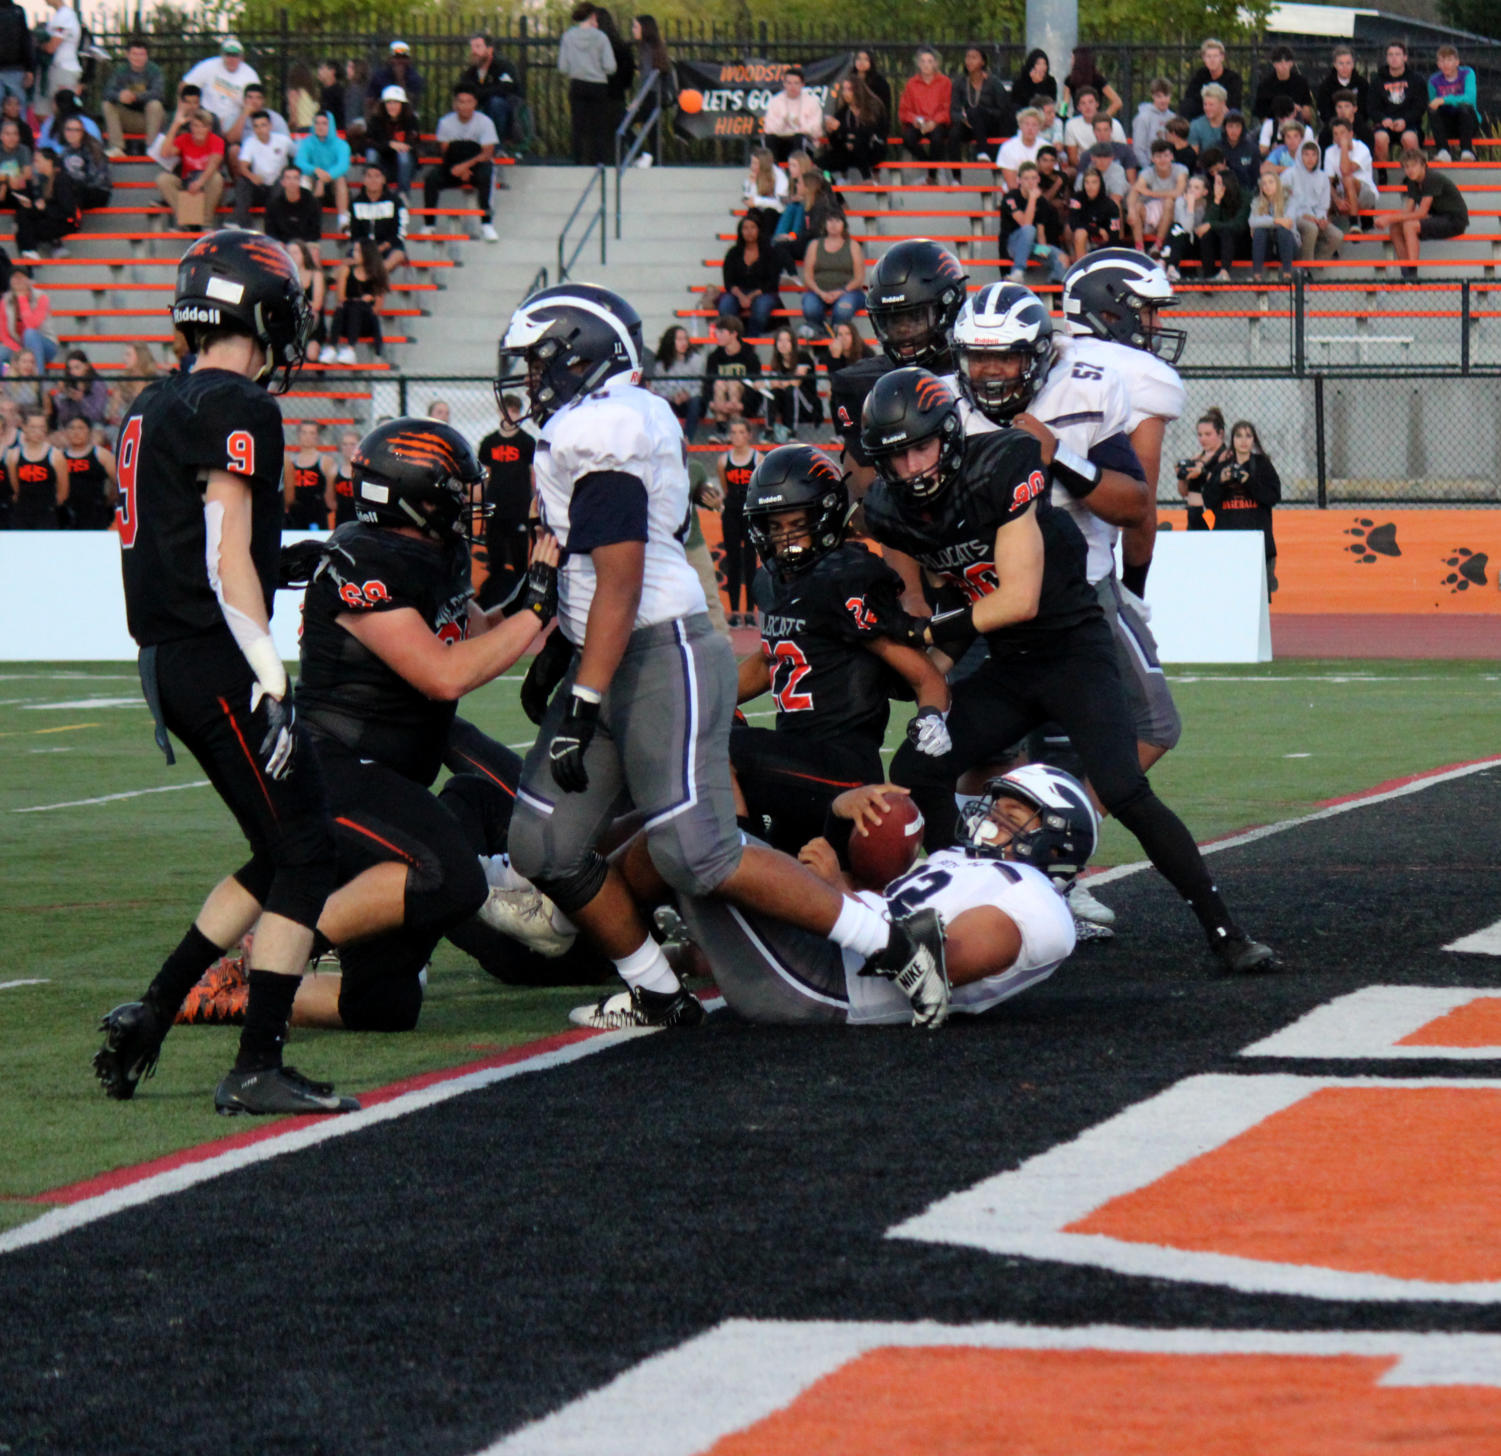 Fullback+Si%27i+Tengei%2C+a+junior%2C+dives+into+the+endzone%2C+scoring+a+touchdown+for+Carlmont.